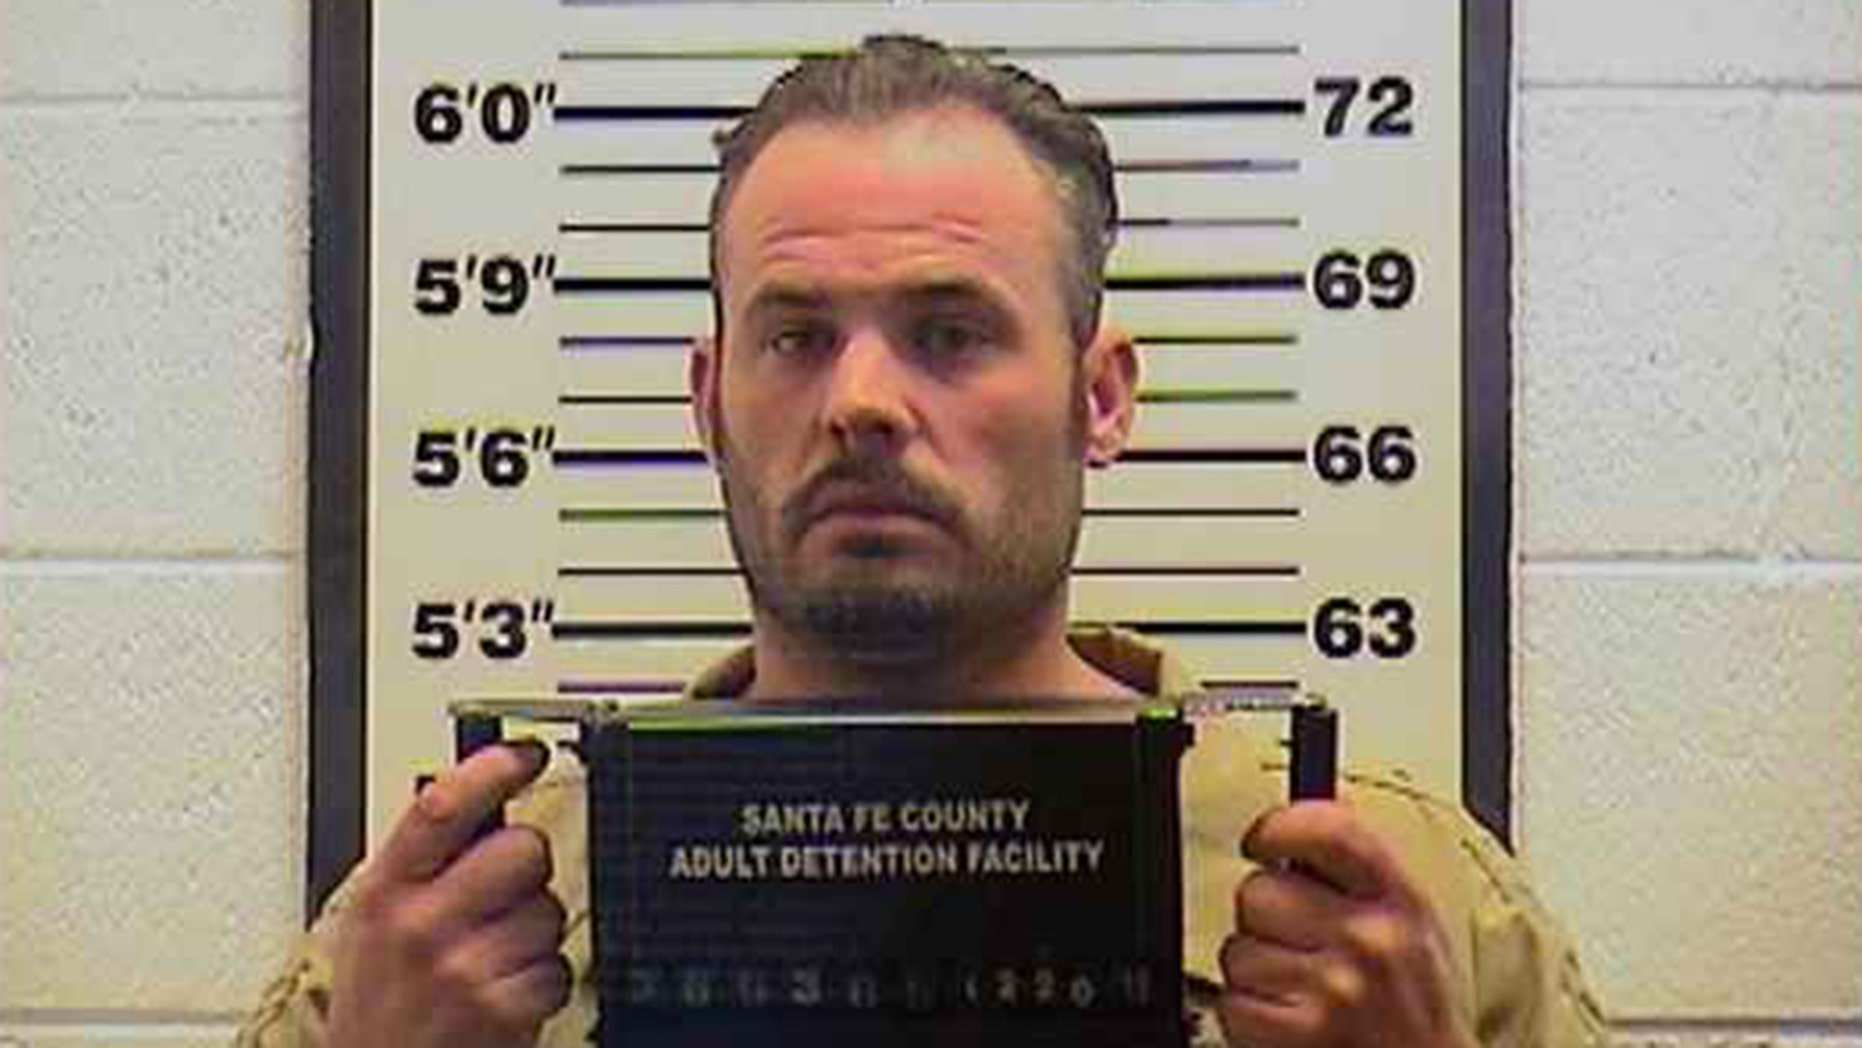 Heith Gleason, who is facing a murder charge in the killing of Colorado resident Amy Garcia, reportedly said following her death that his son 'just earned his man card'.